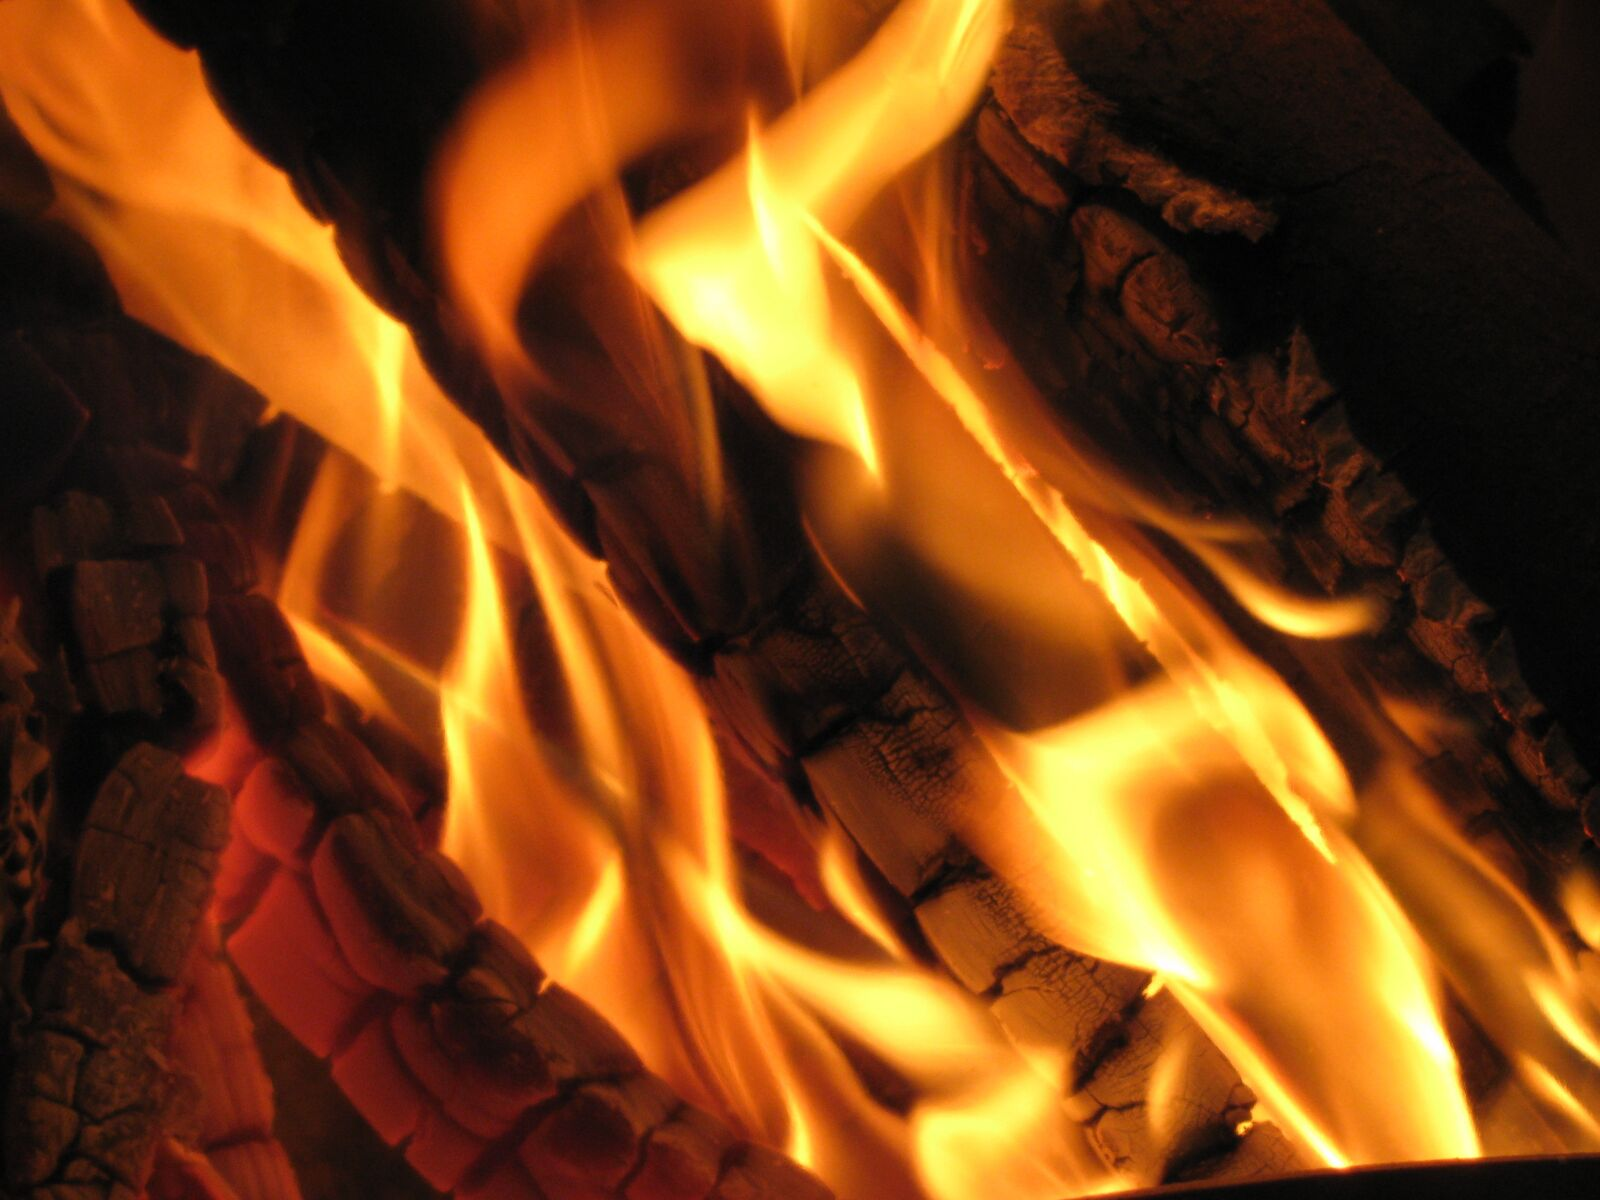 """Canon PowerShot SX110 IS sample photo. """"Fire, open fire, fireplace"""" photography"""